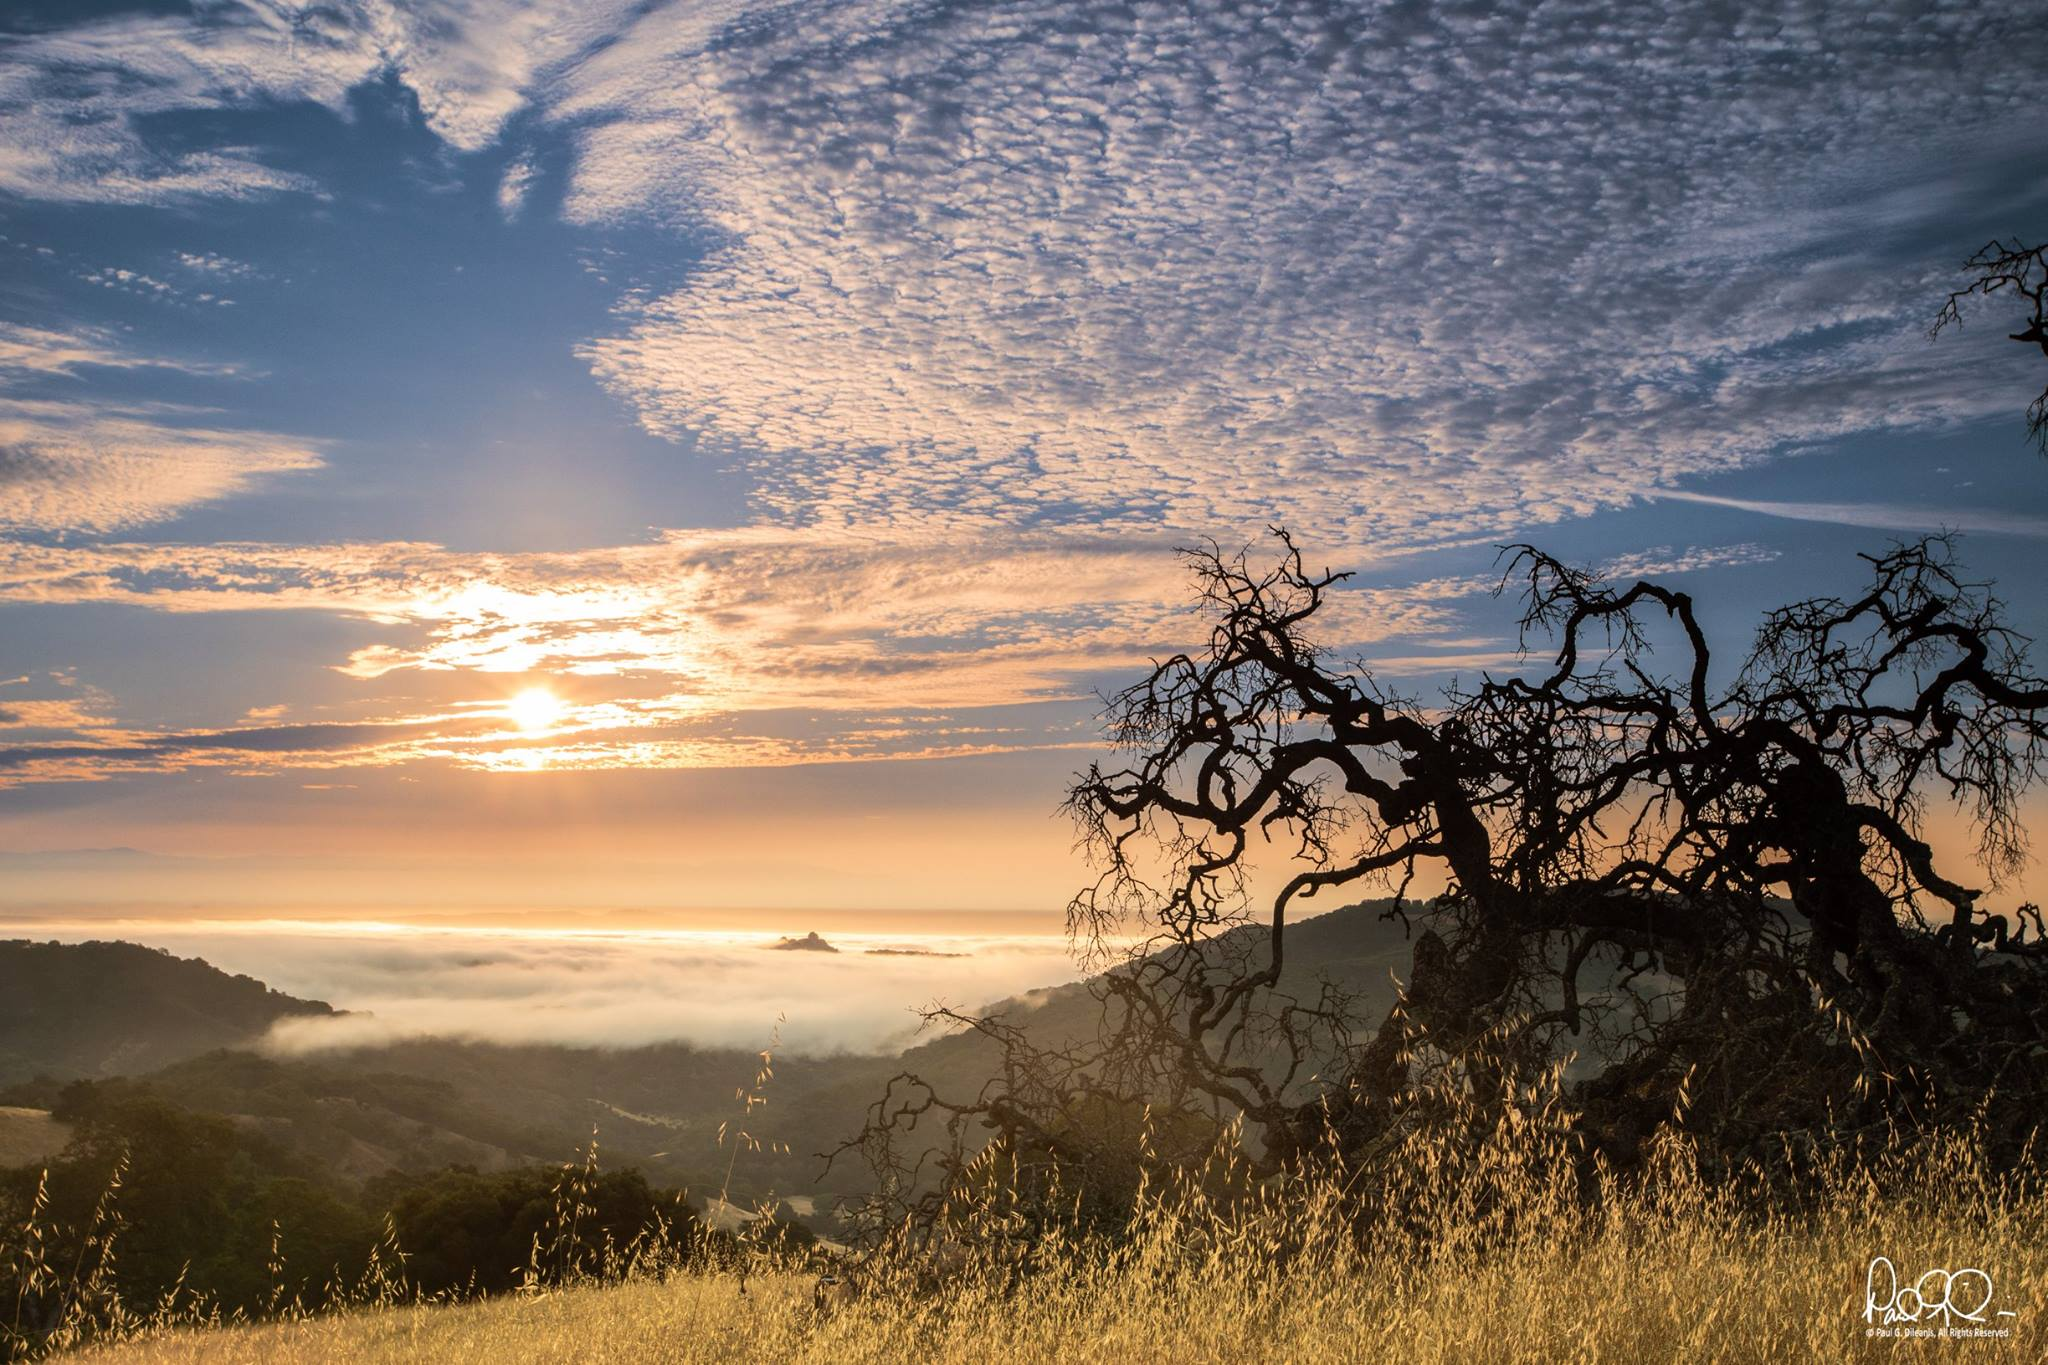 Paul Dileanis - Sunrise from the Mayfair Ranch Trail - Rancho Canada del Oro Open Space Preserve